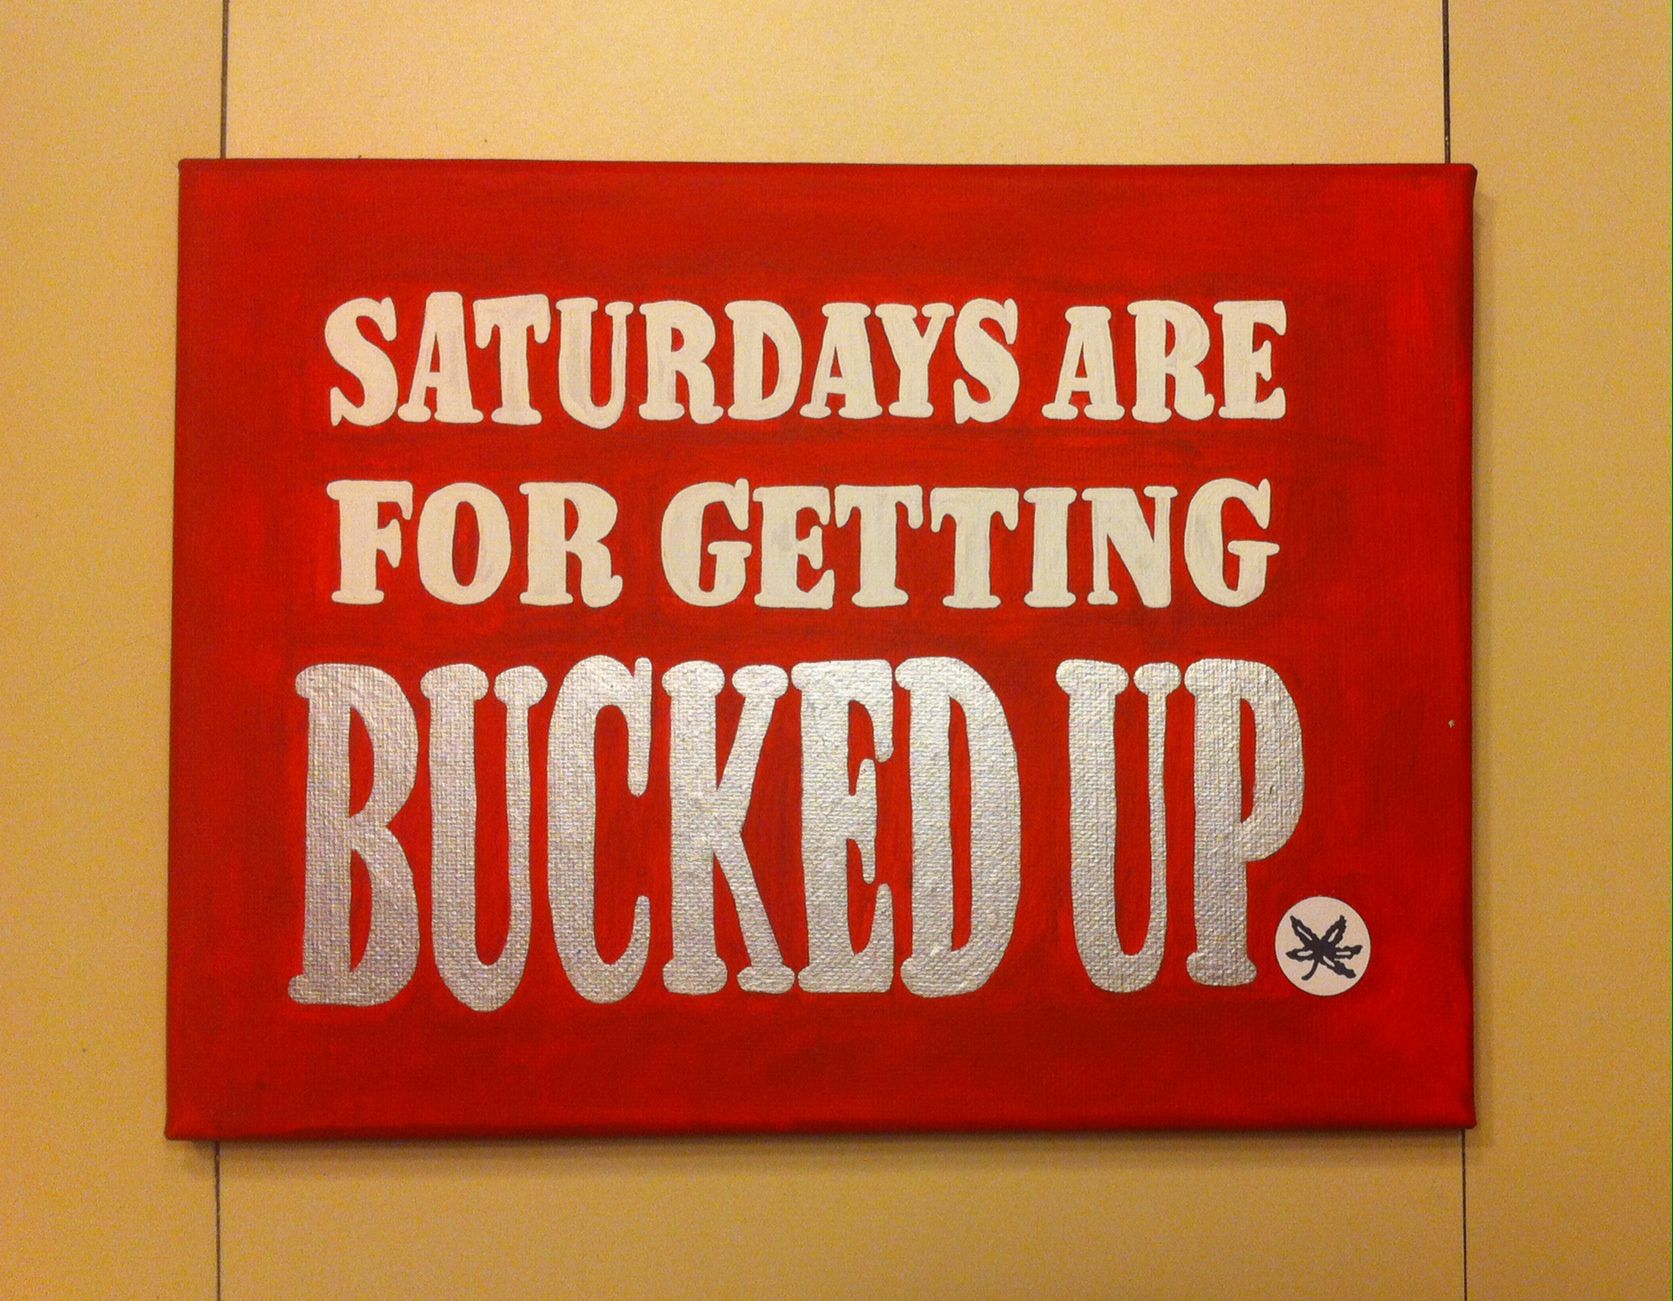 Saturdays Are For Getting Bucked Up Ohio State Buckeye Nation Painted Canvas